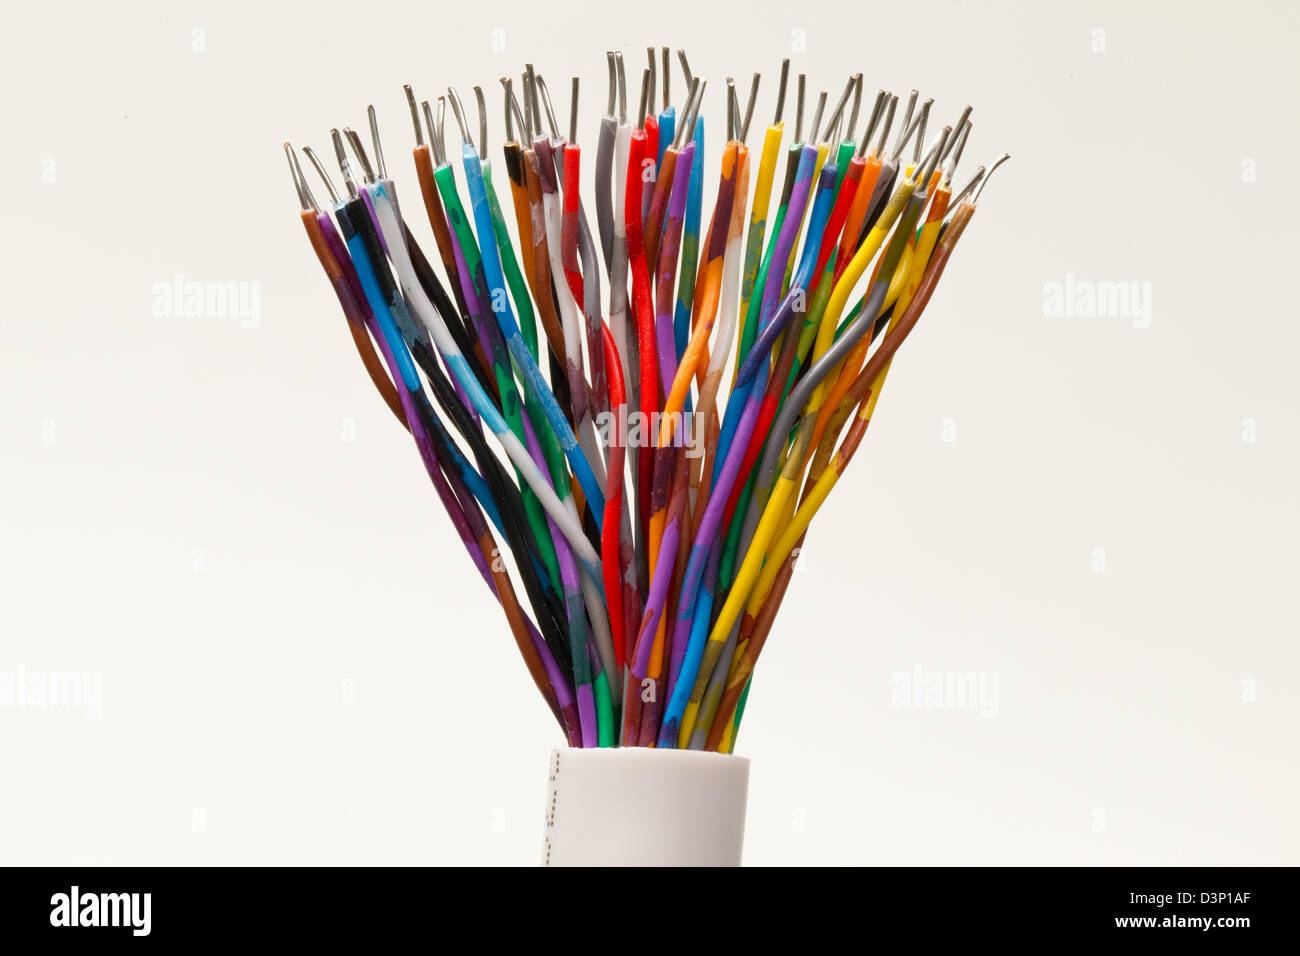 Cables Multi Coloured Diversity Rainbow Mixed Colours Stock Photo Wiring Cable